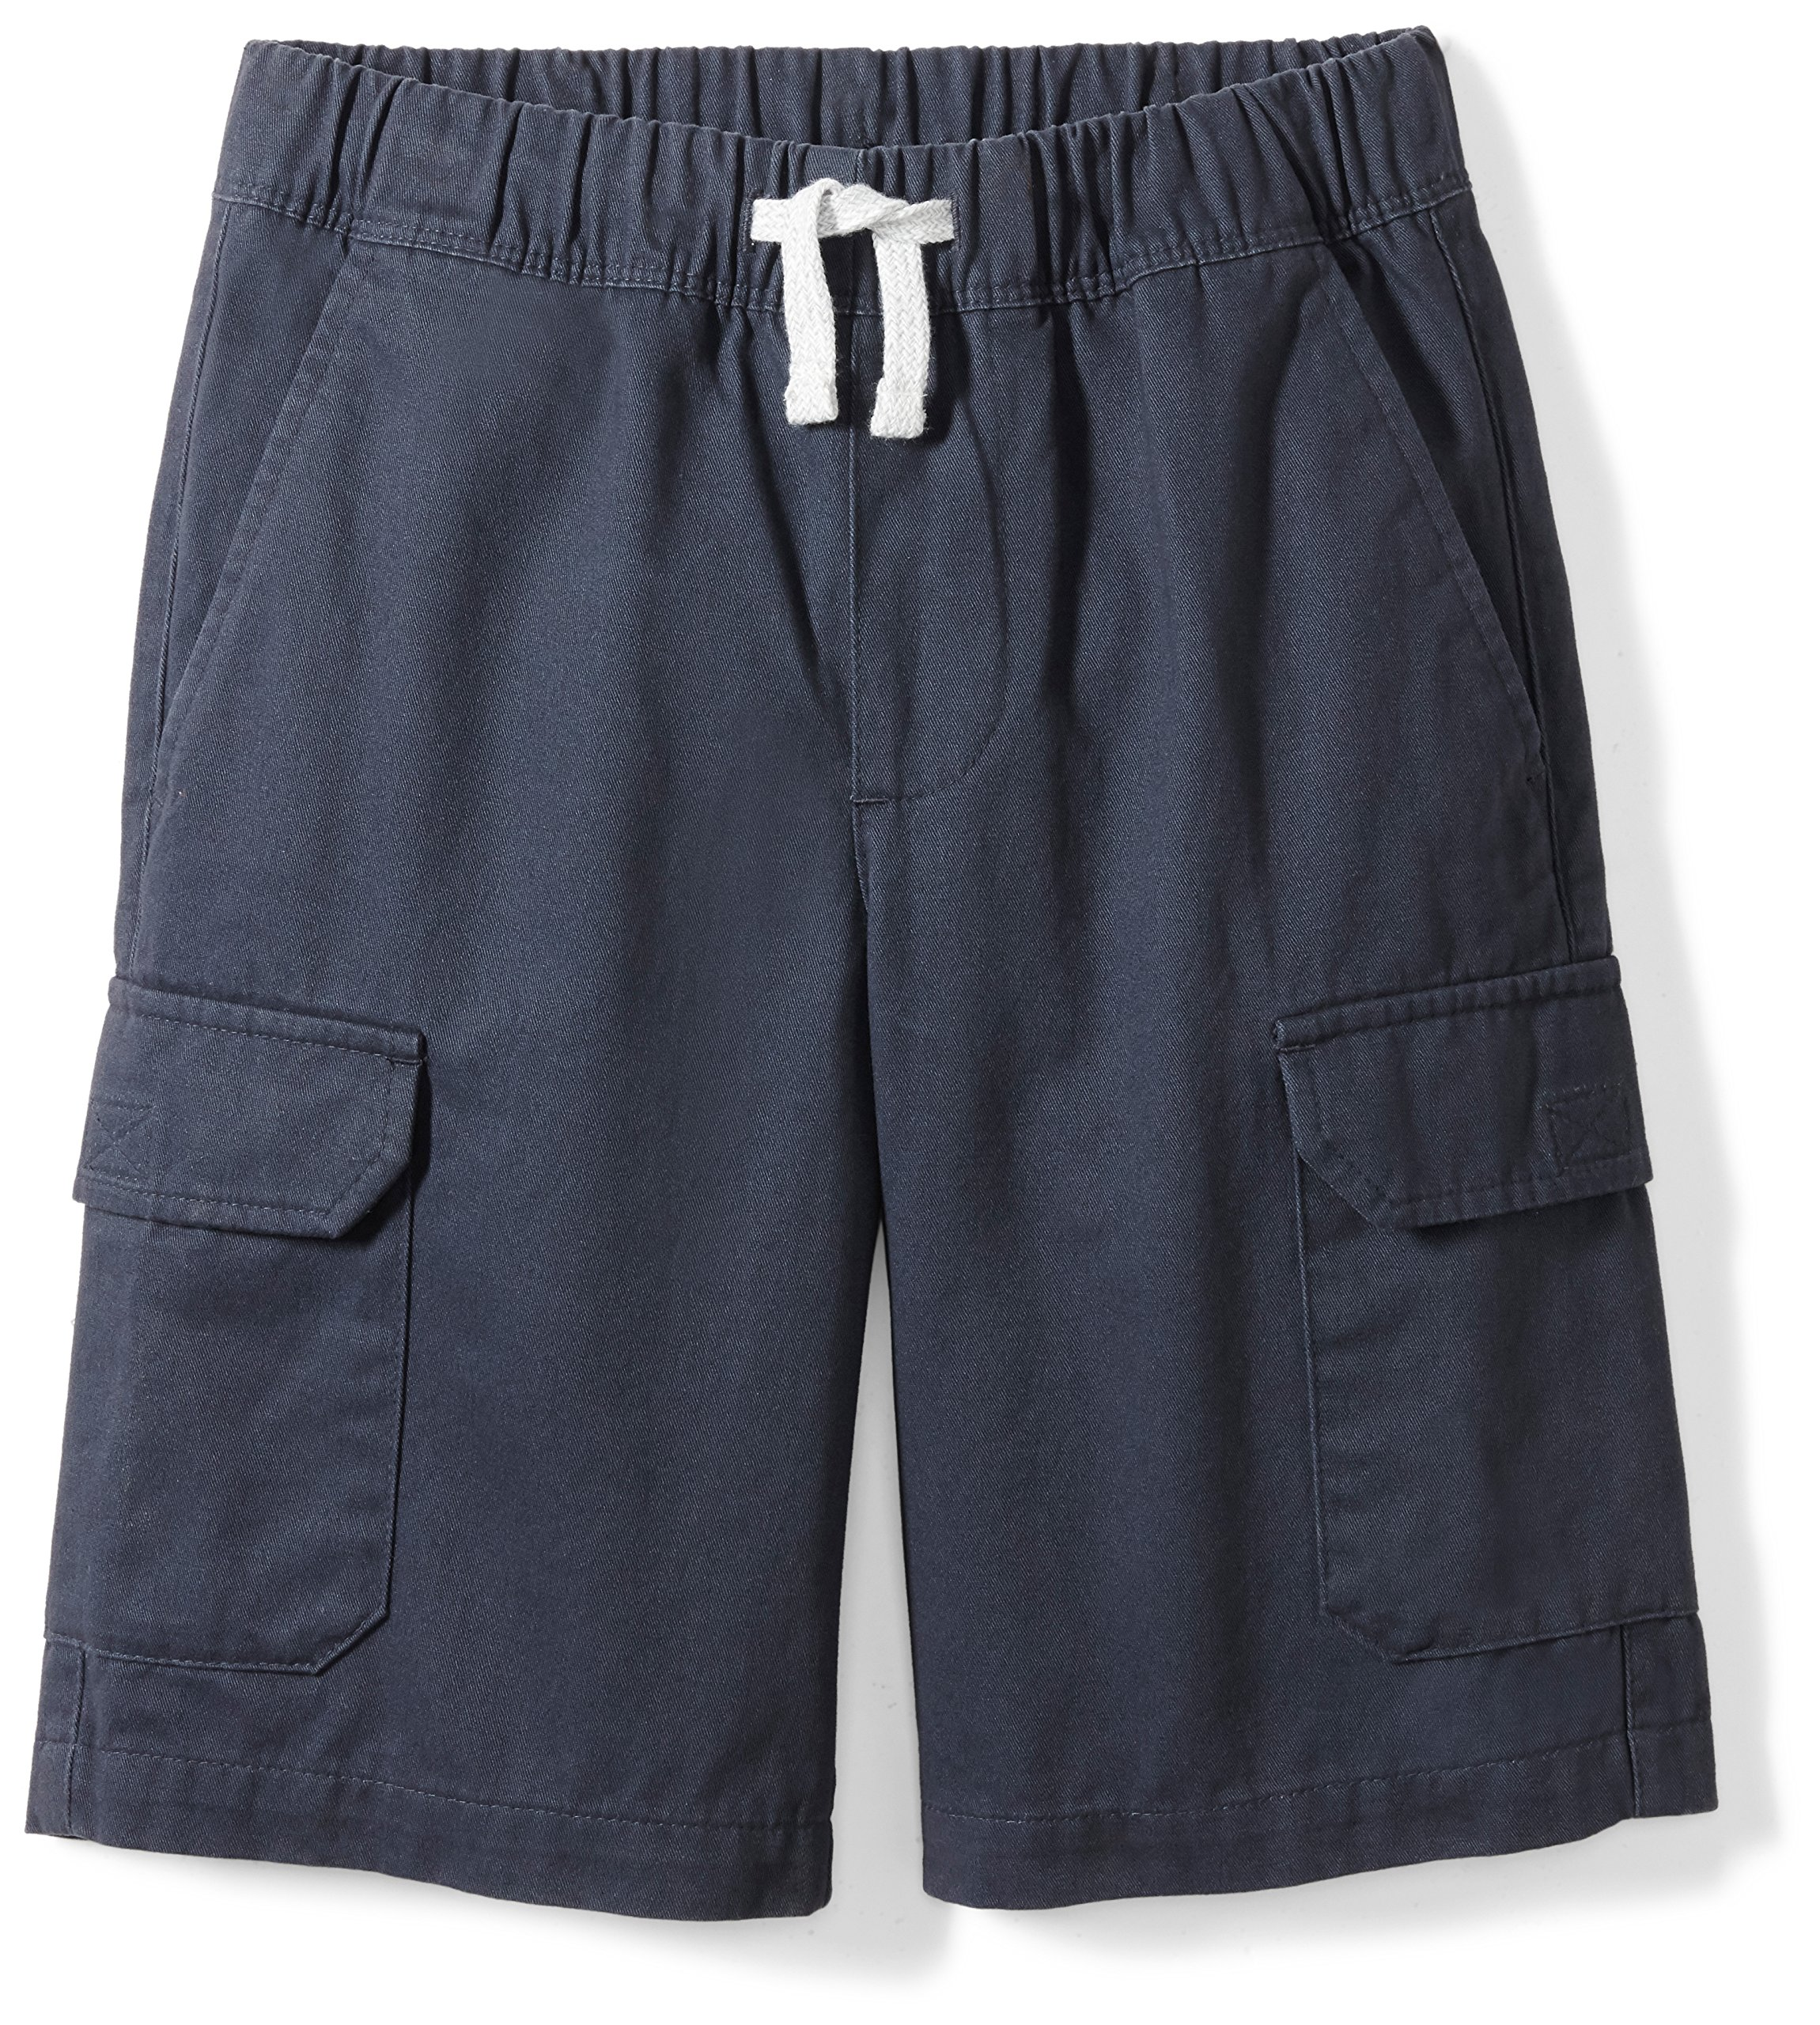 Spotted Zebra Little Boys' Cargo Shorts, Navy, Small (6-7)